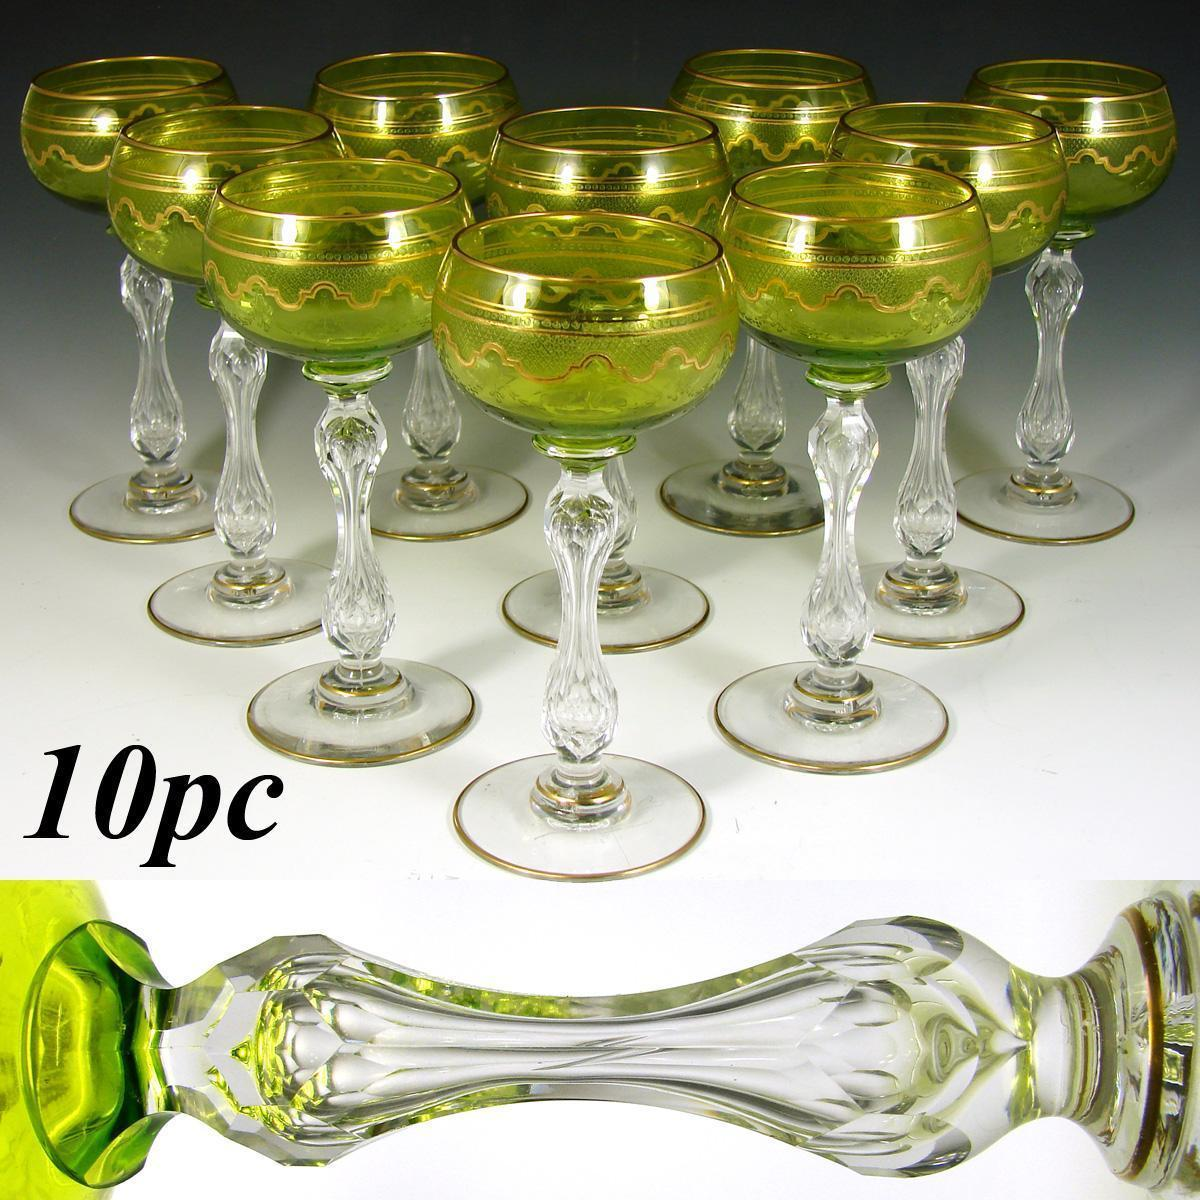 Set of 10 Saint Louis Crystal Beethoven Chartreuse Gold Encrusted Wine Hocks, Goblets